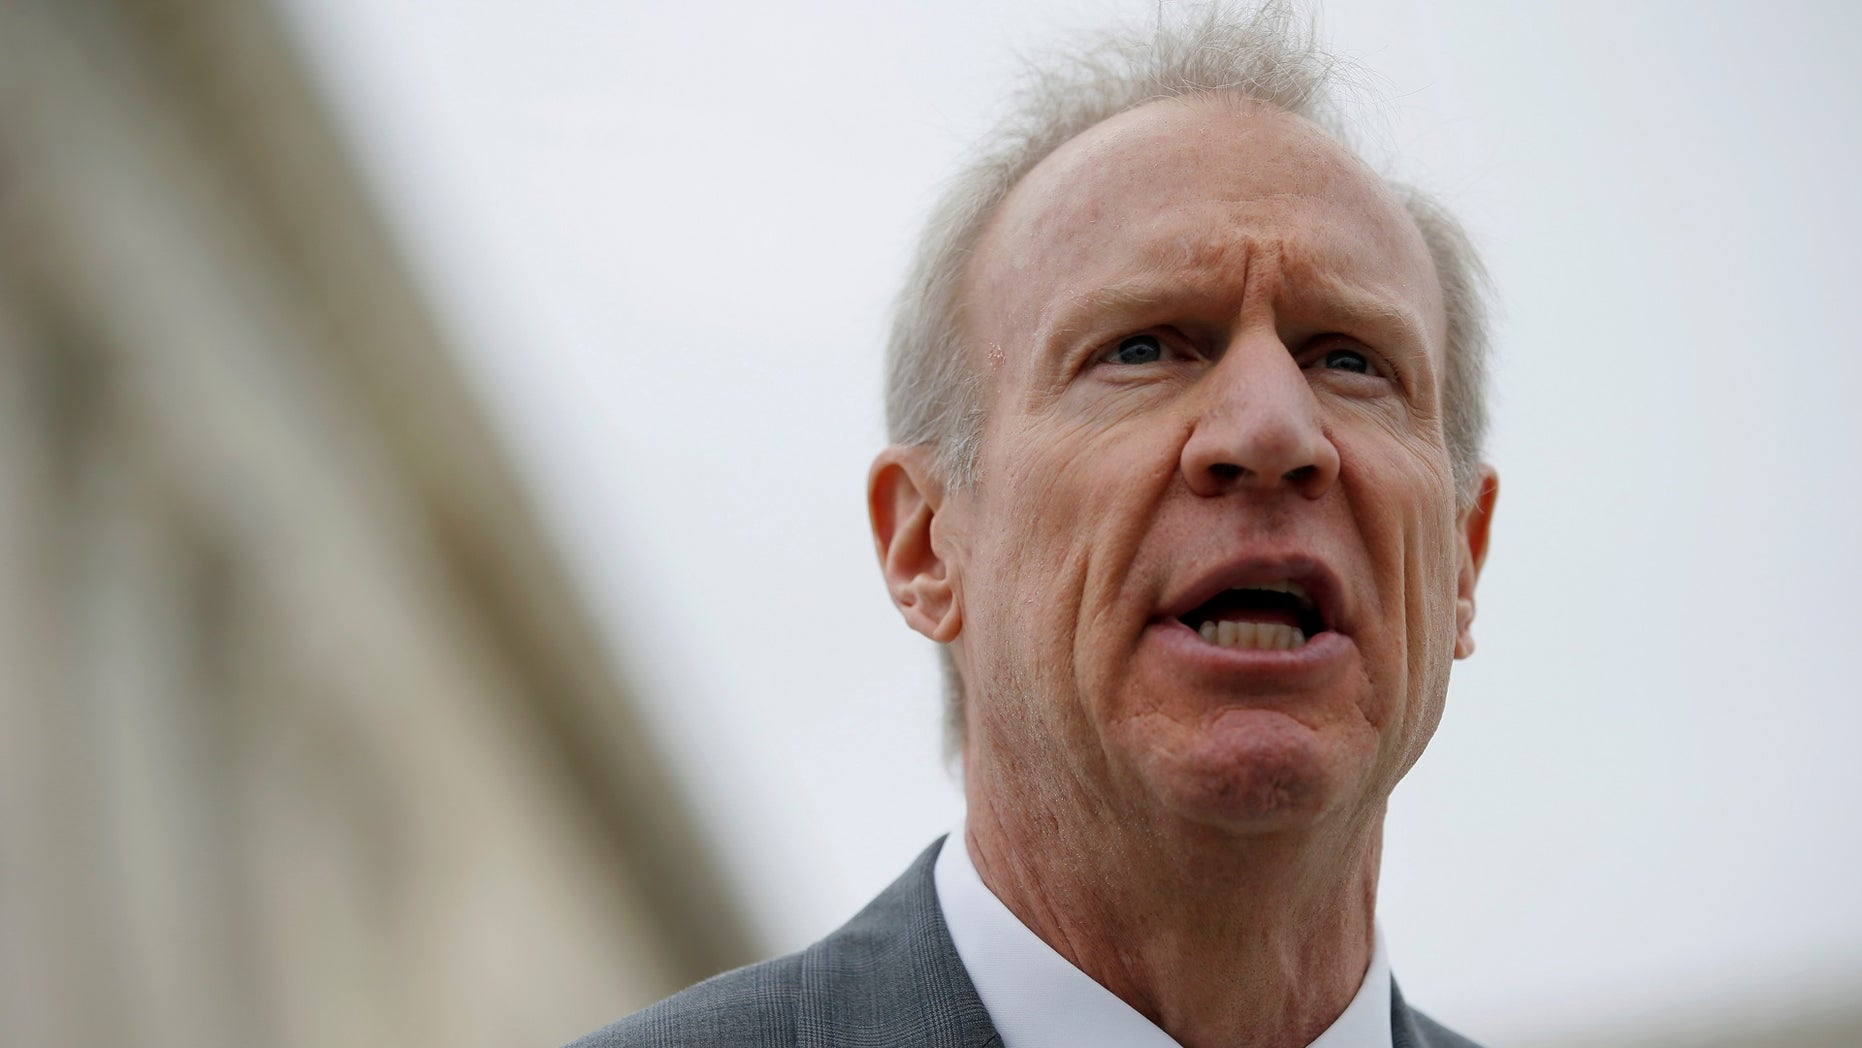 Illinois Gov. Bruce Rauner, a Republican, has proposed bringing back the death penalty in his state for mass murderers and those who kill police officers.